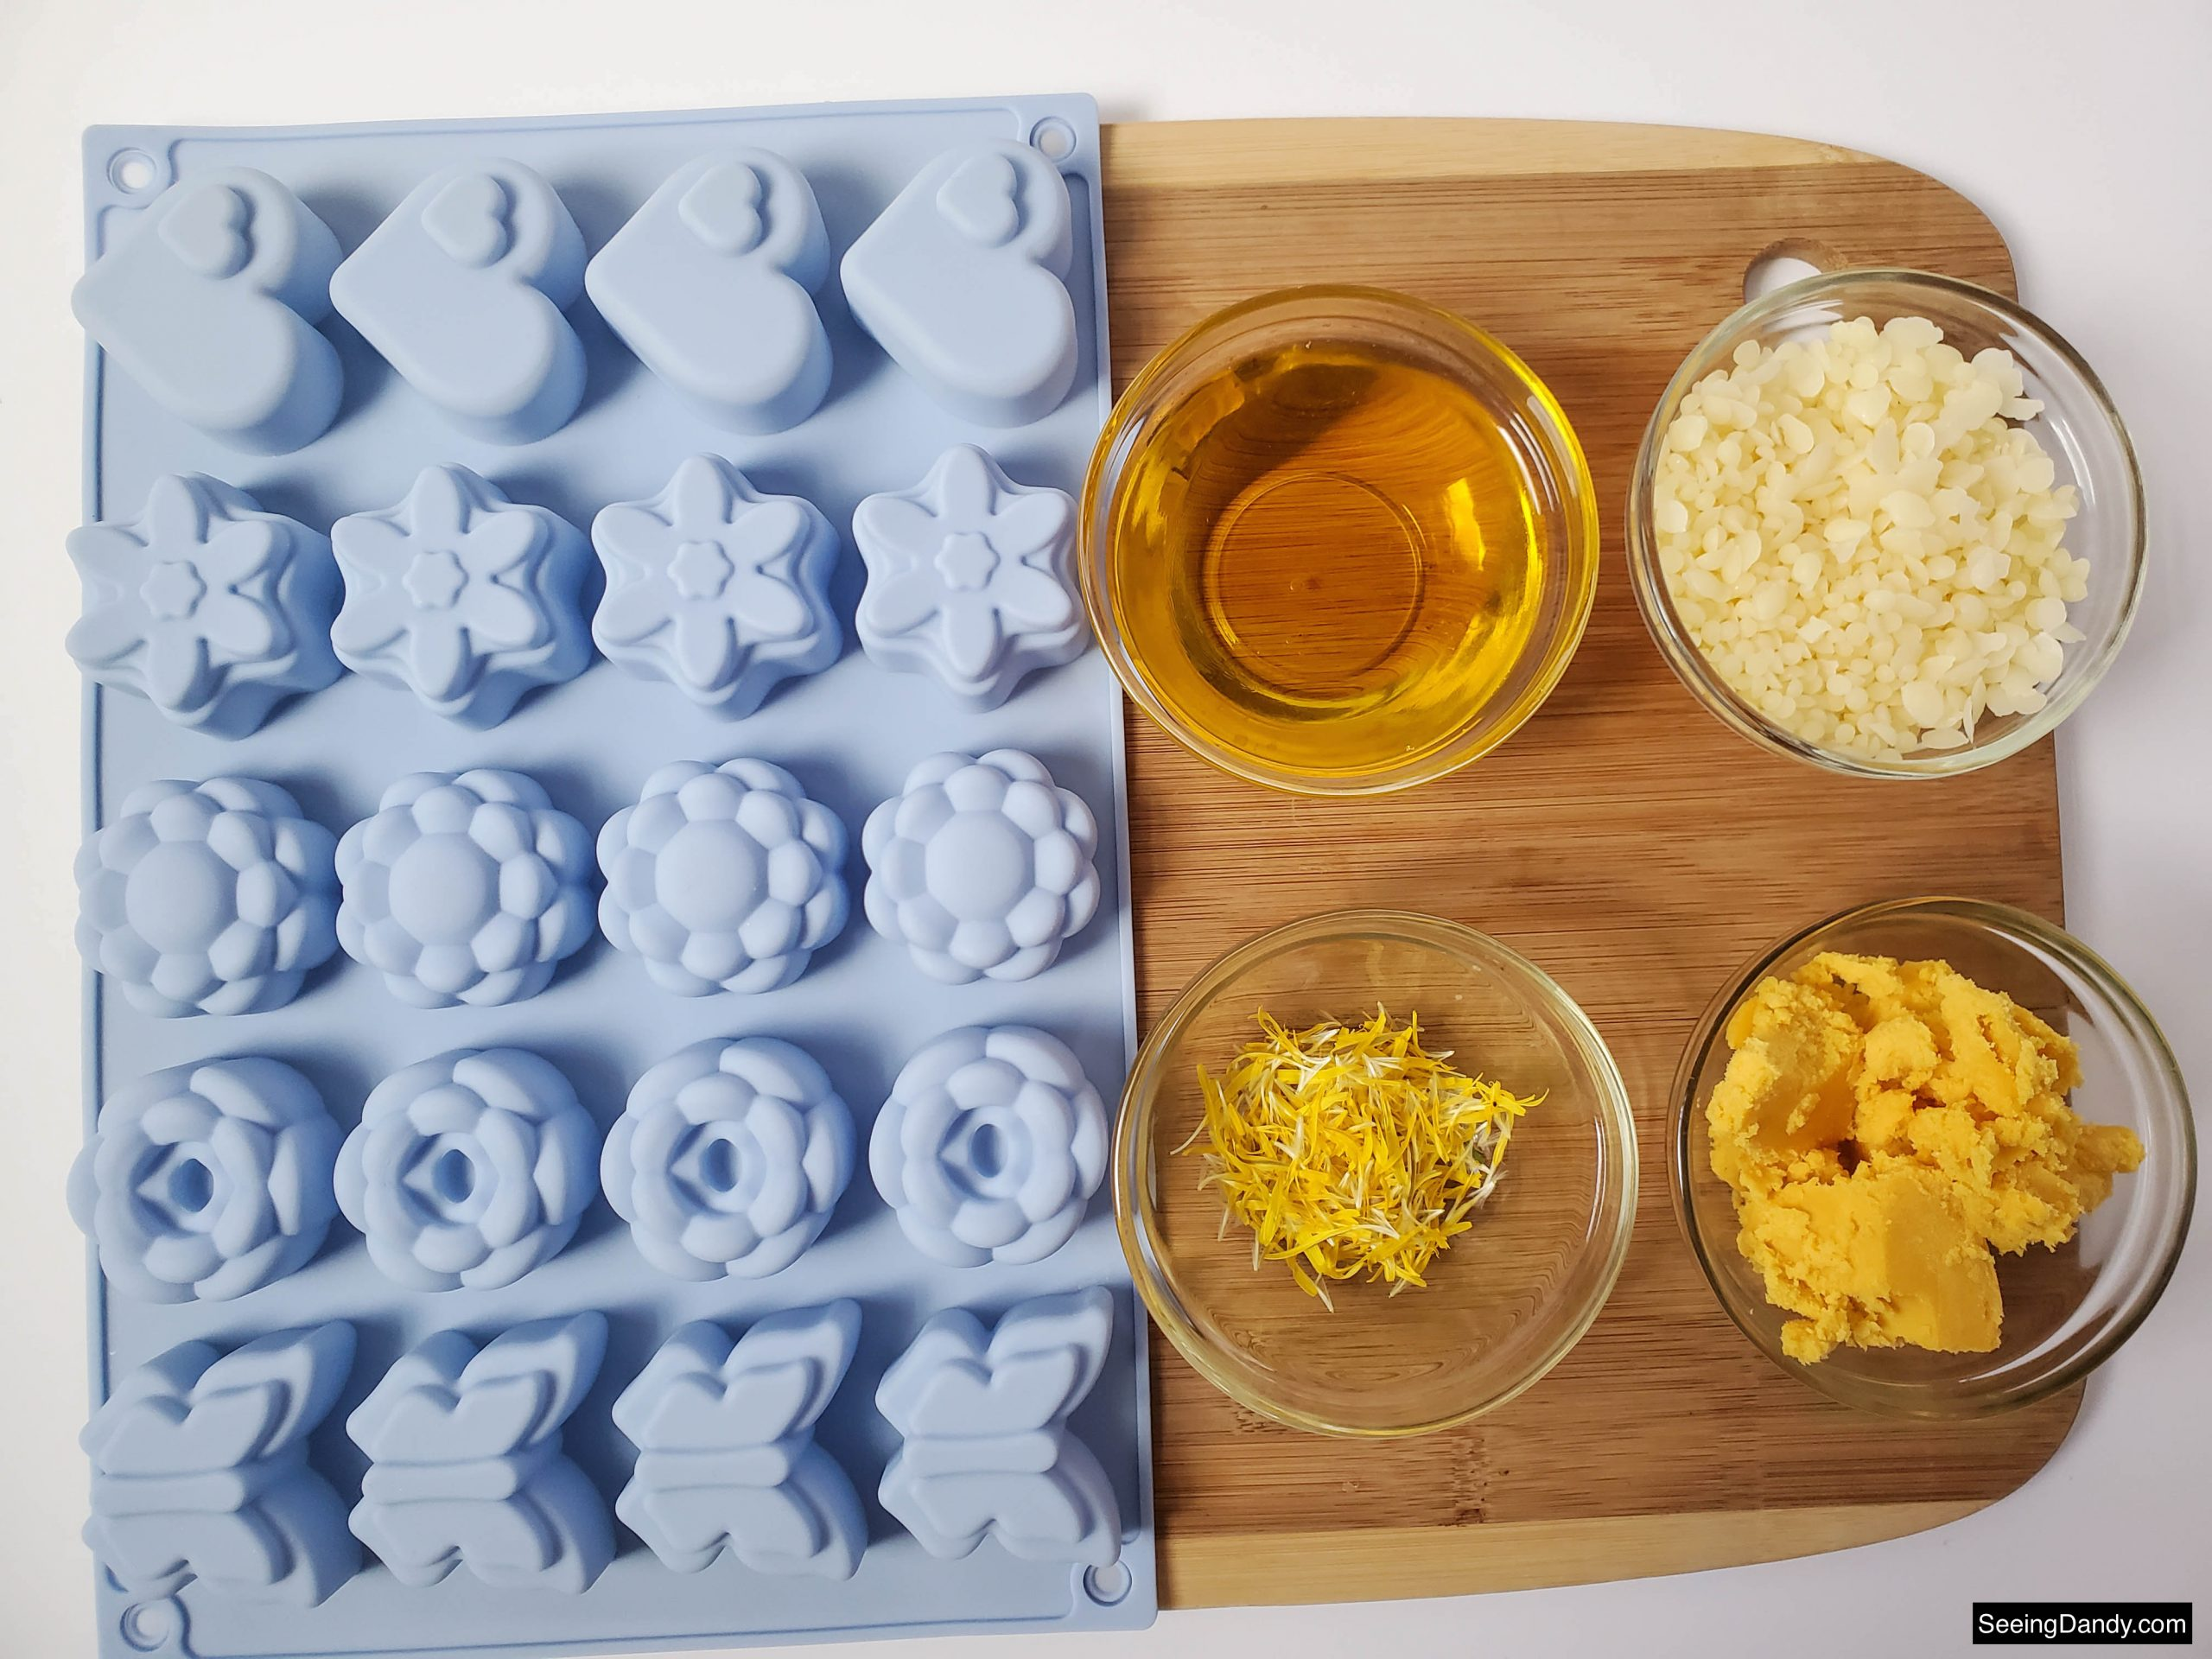 wood cutting board, glass mixing bowls, shea butter, beeswax, dandelion infused oil, fresh dandelion petals, silicone flower soap mold